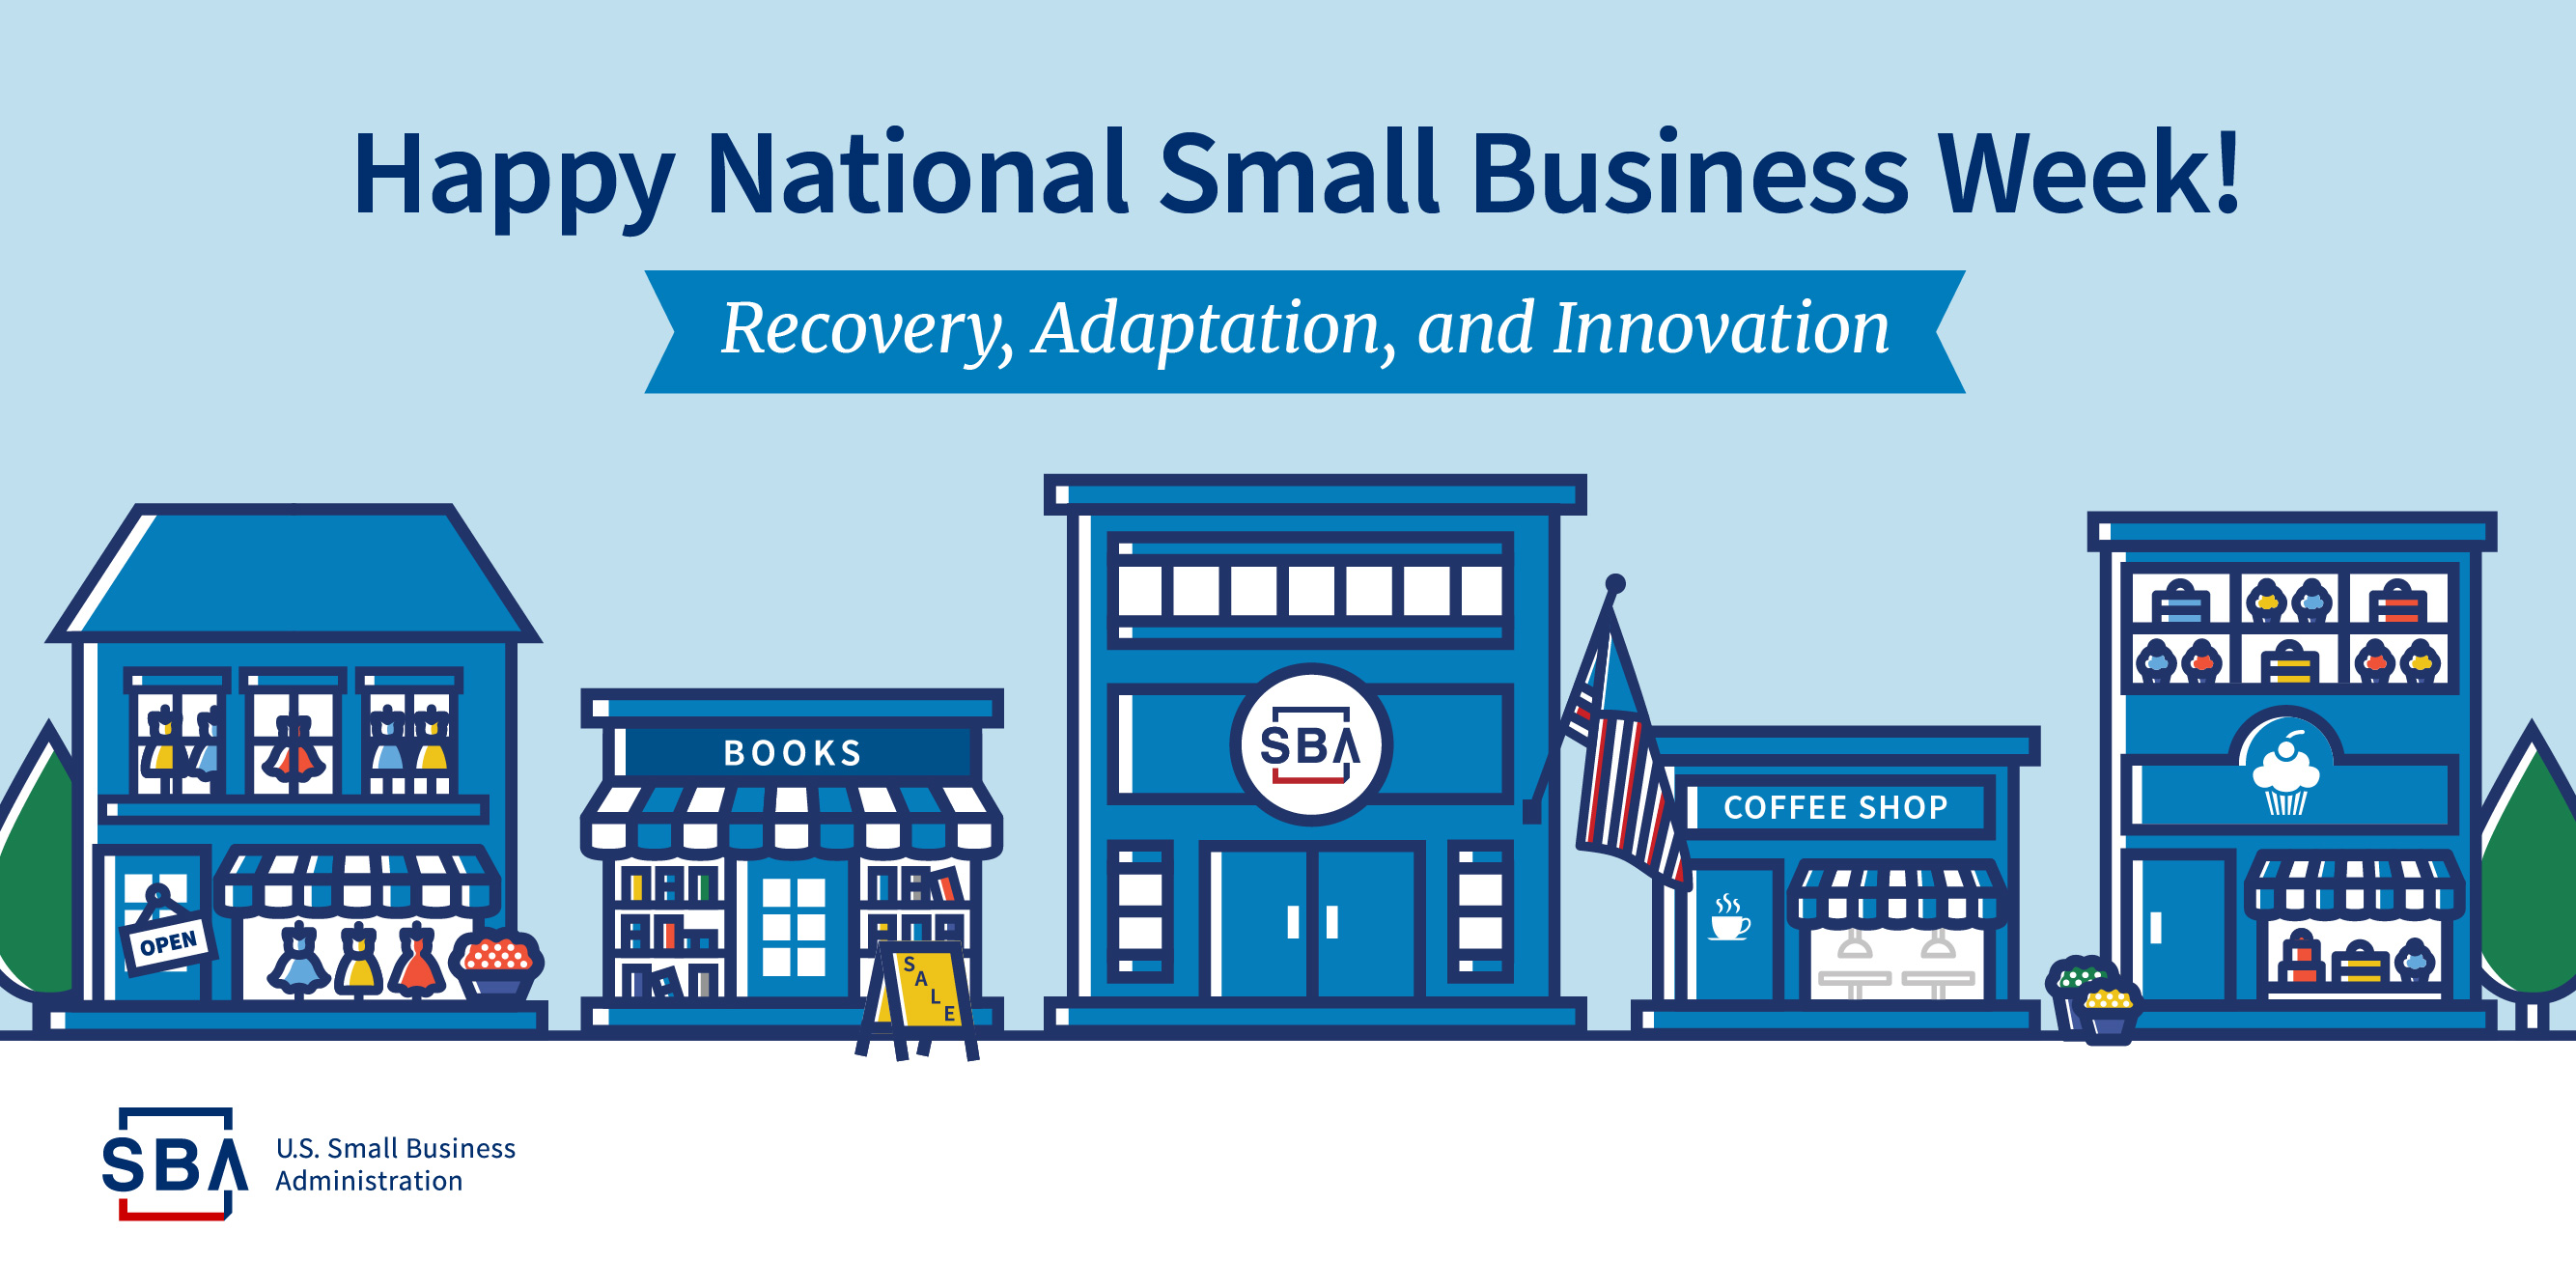 National Small Business Week 2020